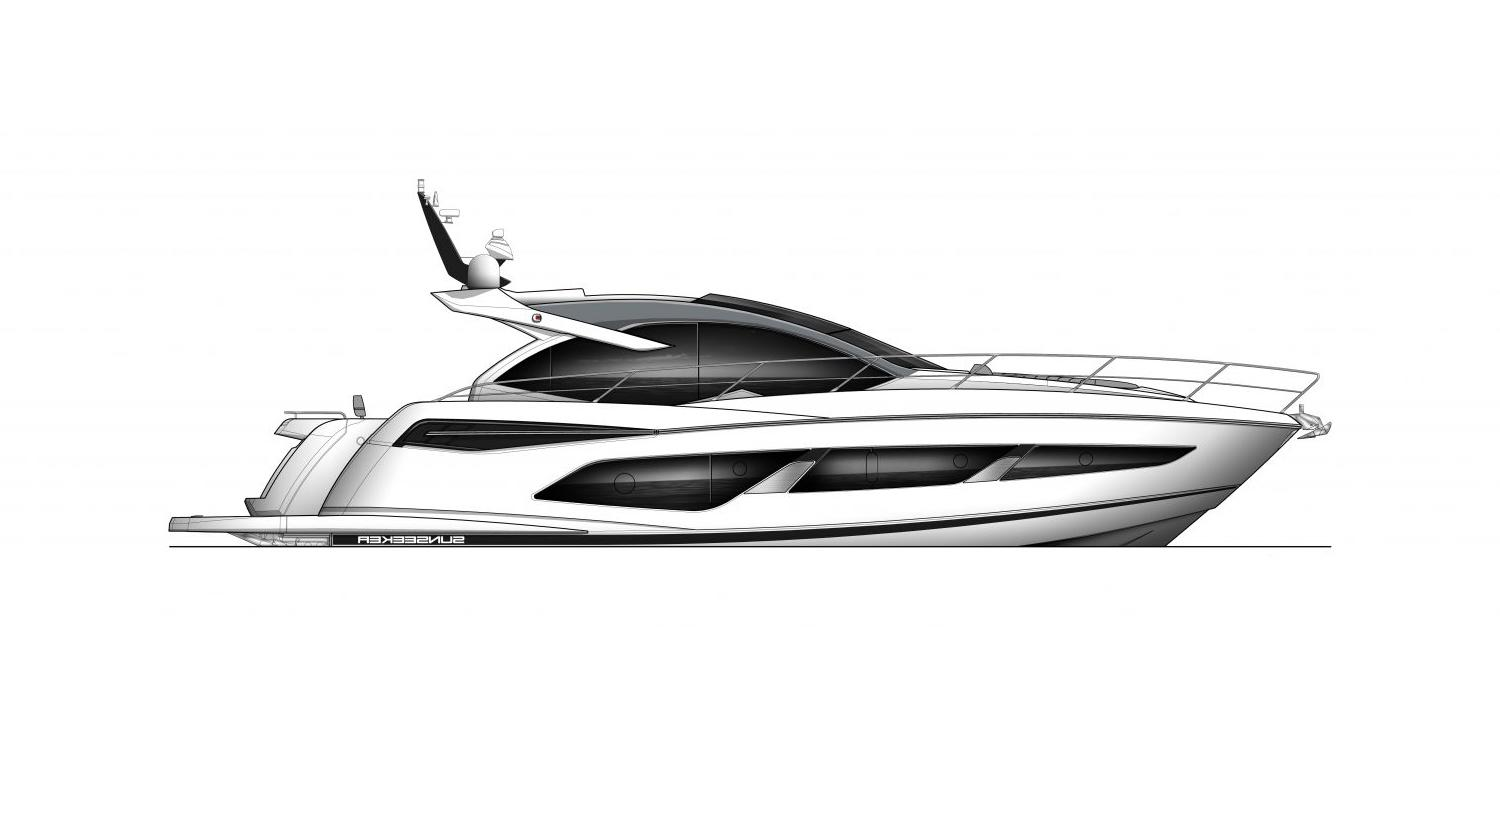 2022 Sunseeker Predator 55 EVO #SS522 inventory image at Sun Country Coastal in Newport Beach